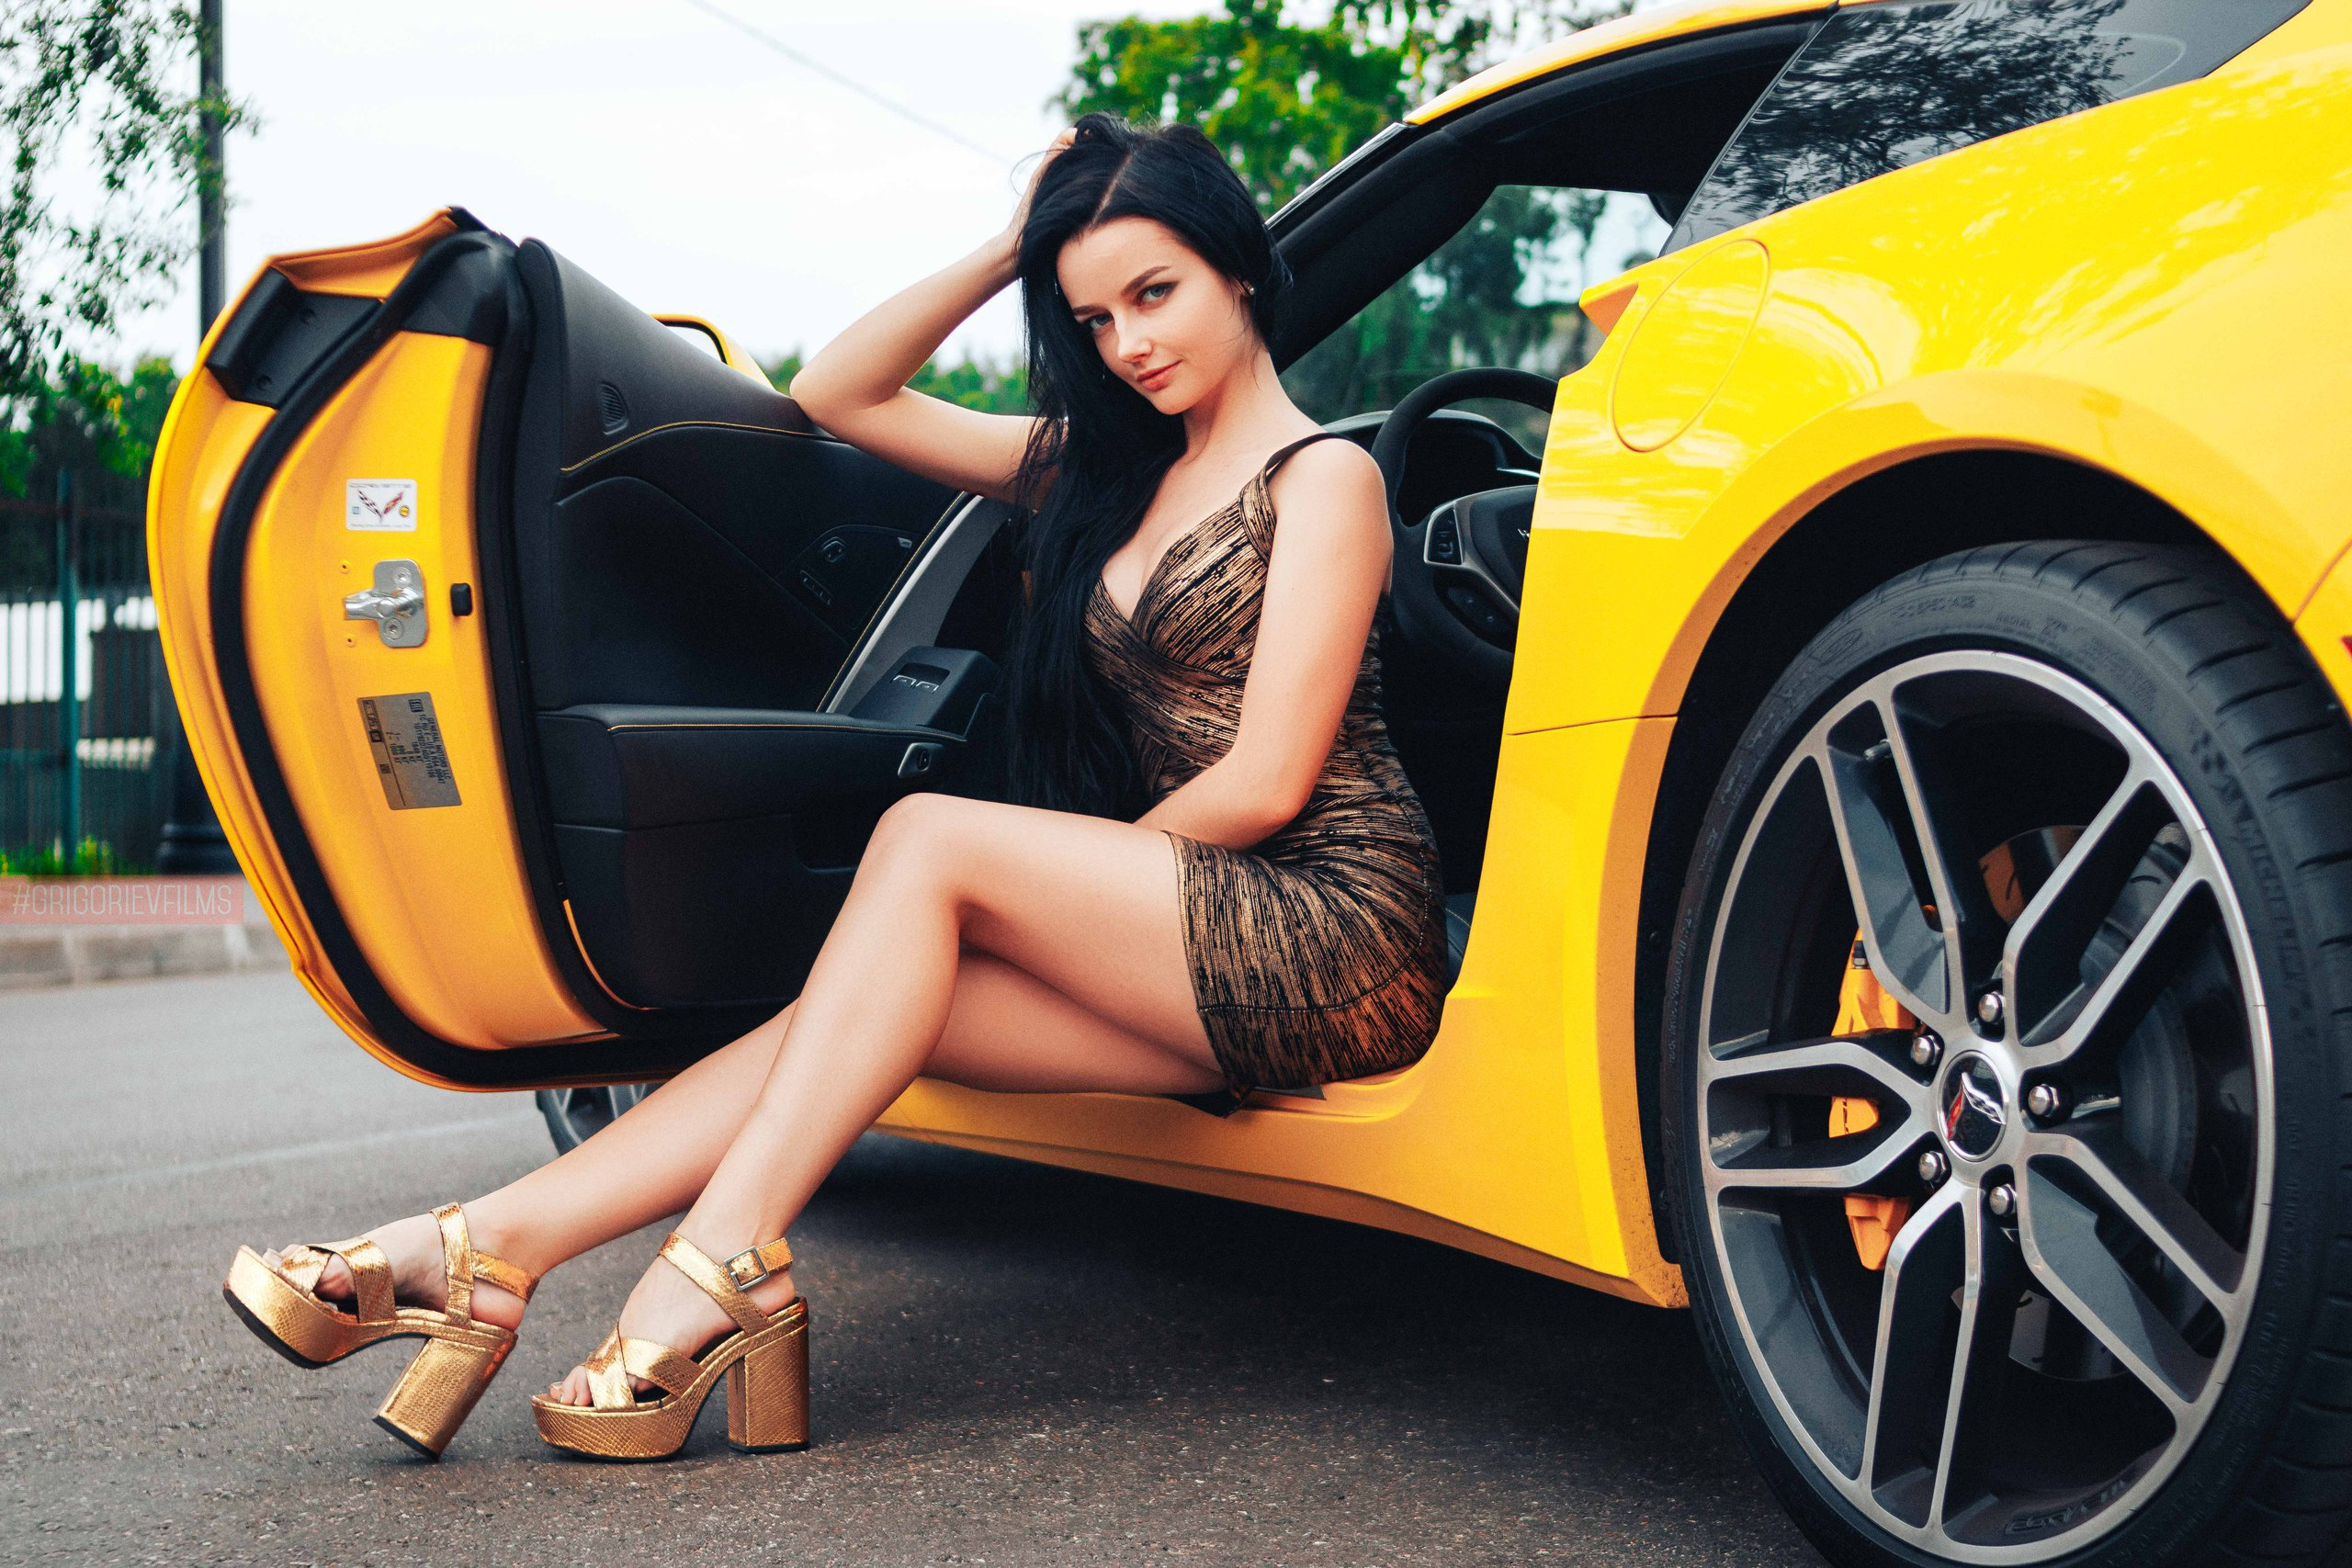 Sport Car Wallpaper With Girl: Gorgeous Girl Sitting In Sport Car, HD Girls, 4k